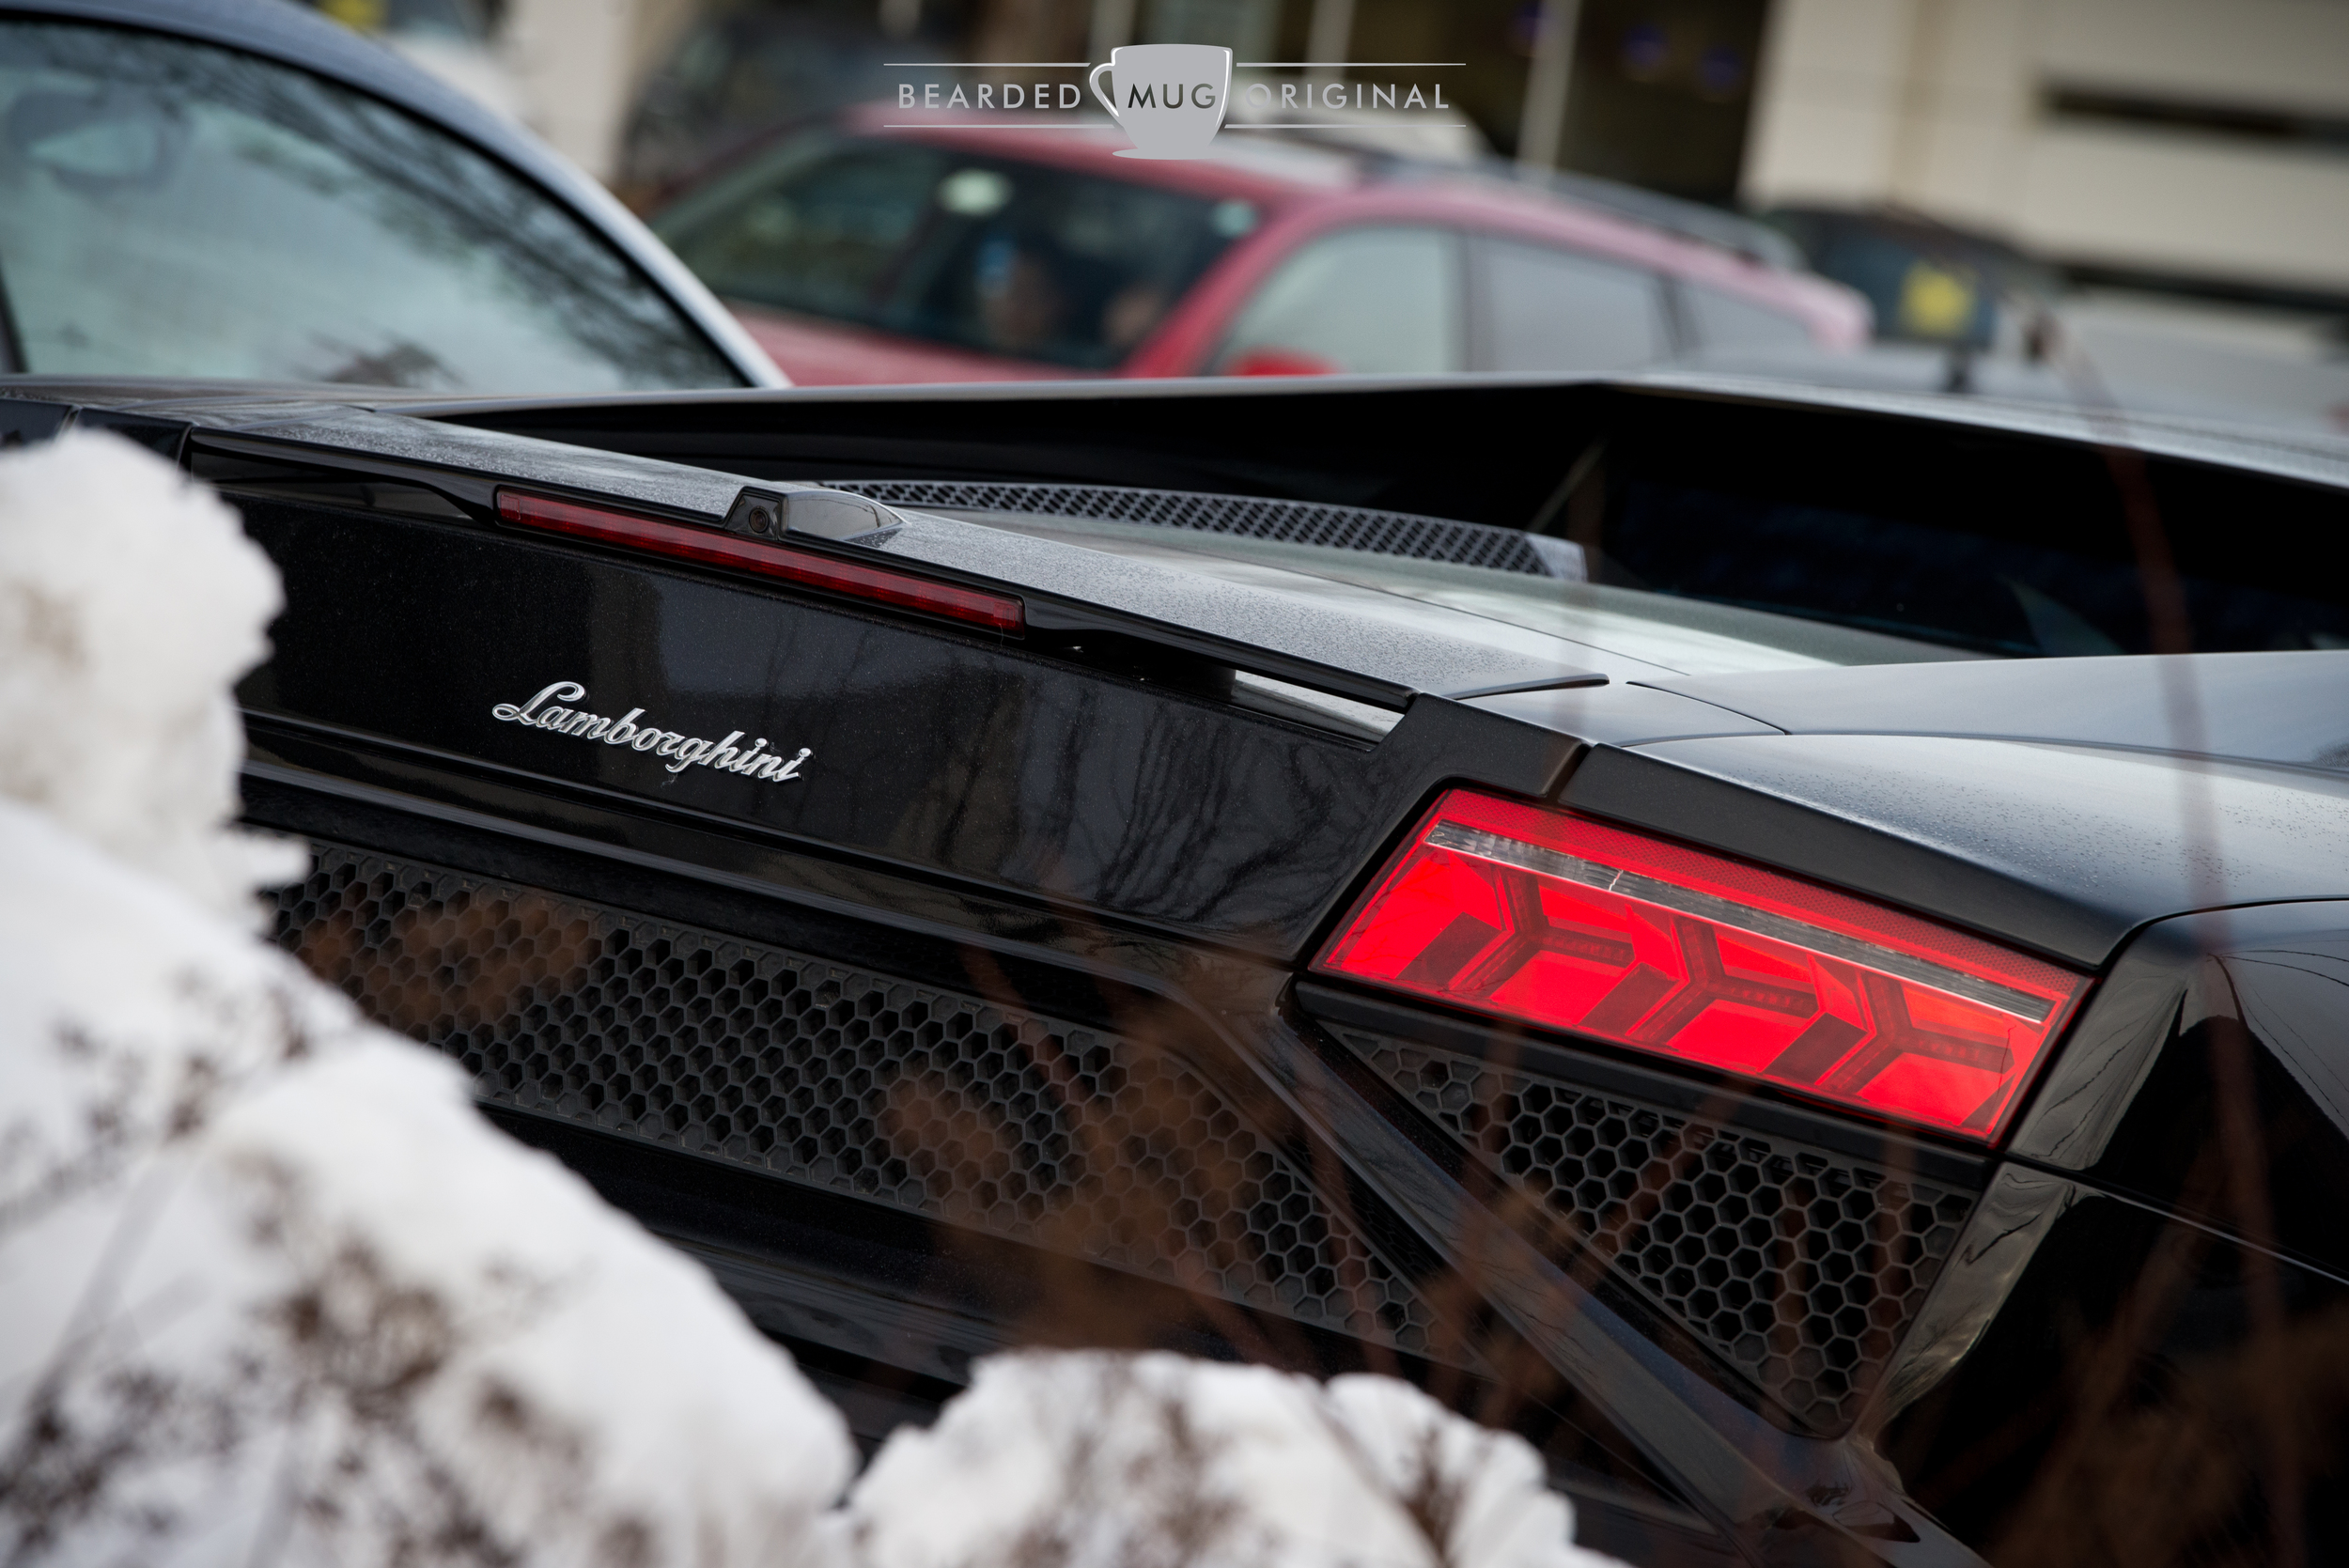 The Lamborghini Gallardo LP560-4 is an angular example of what can be a daily-driven supercar, inconspicuously outfitted with a reverse camera.